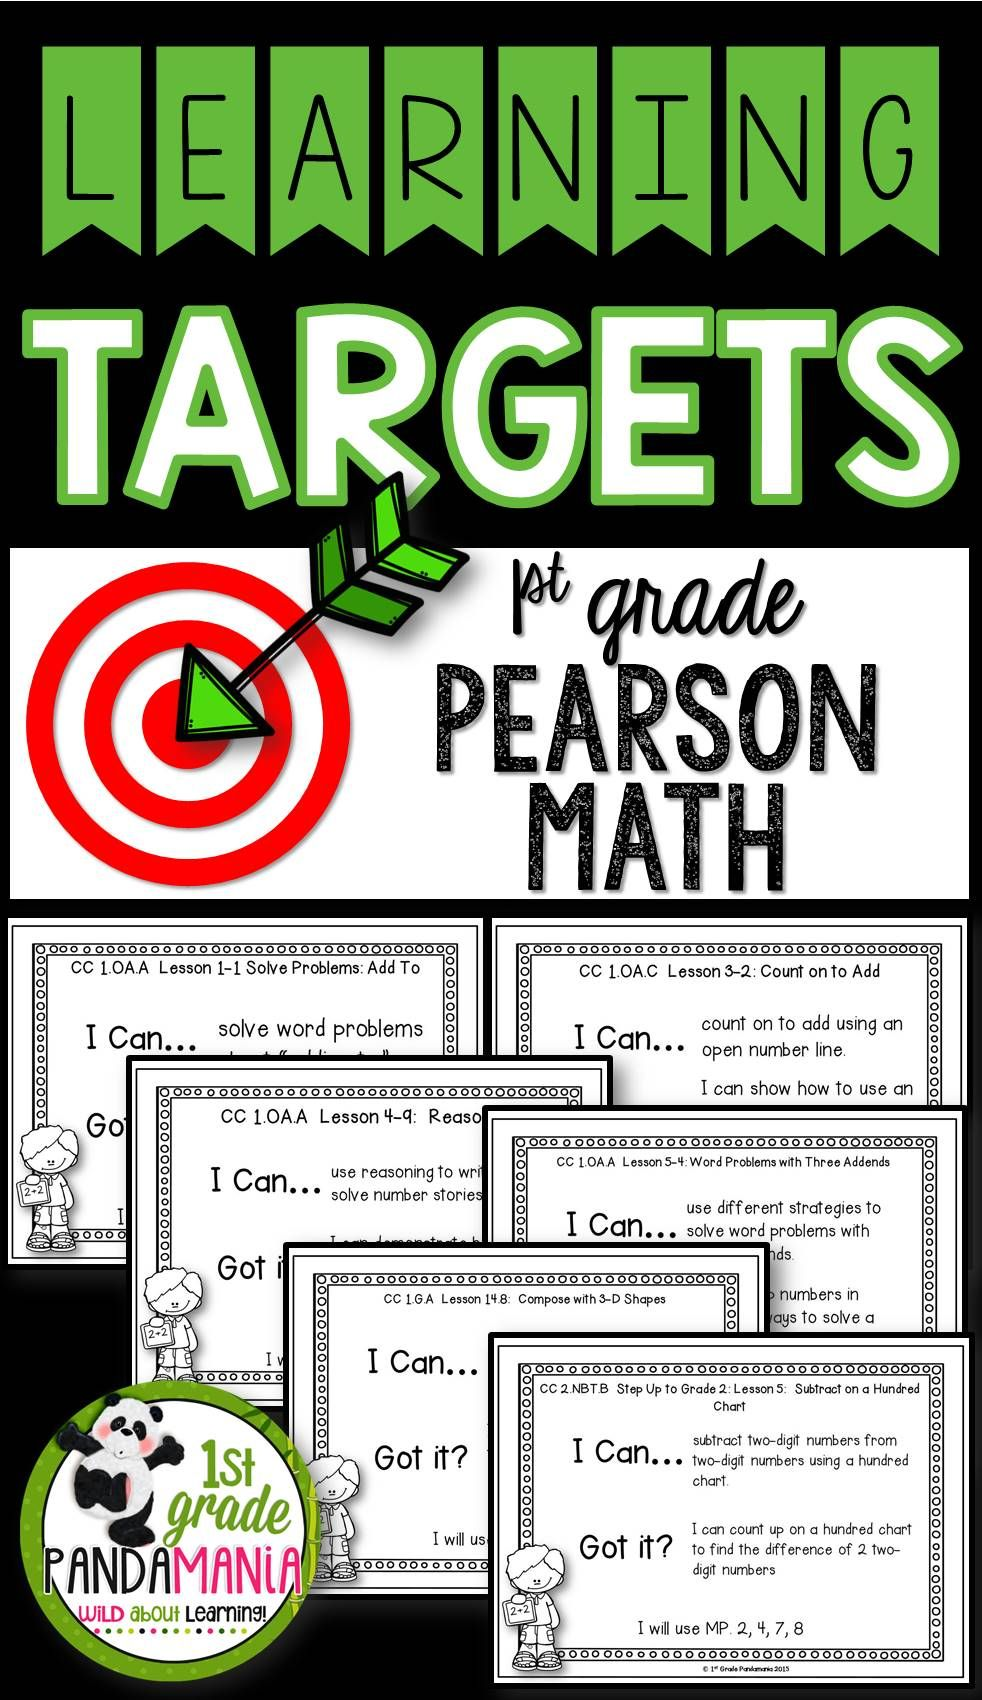 Pearson Math Learning Targets 1st Grade Learning Targets